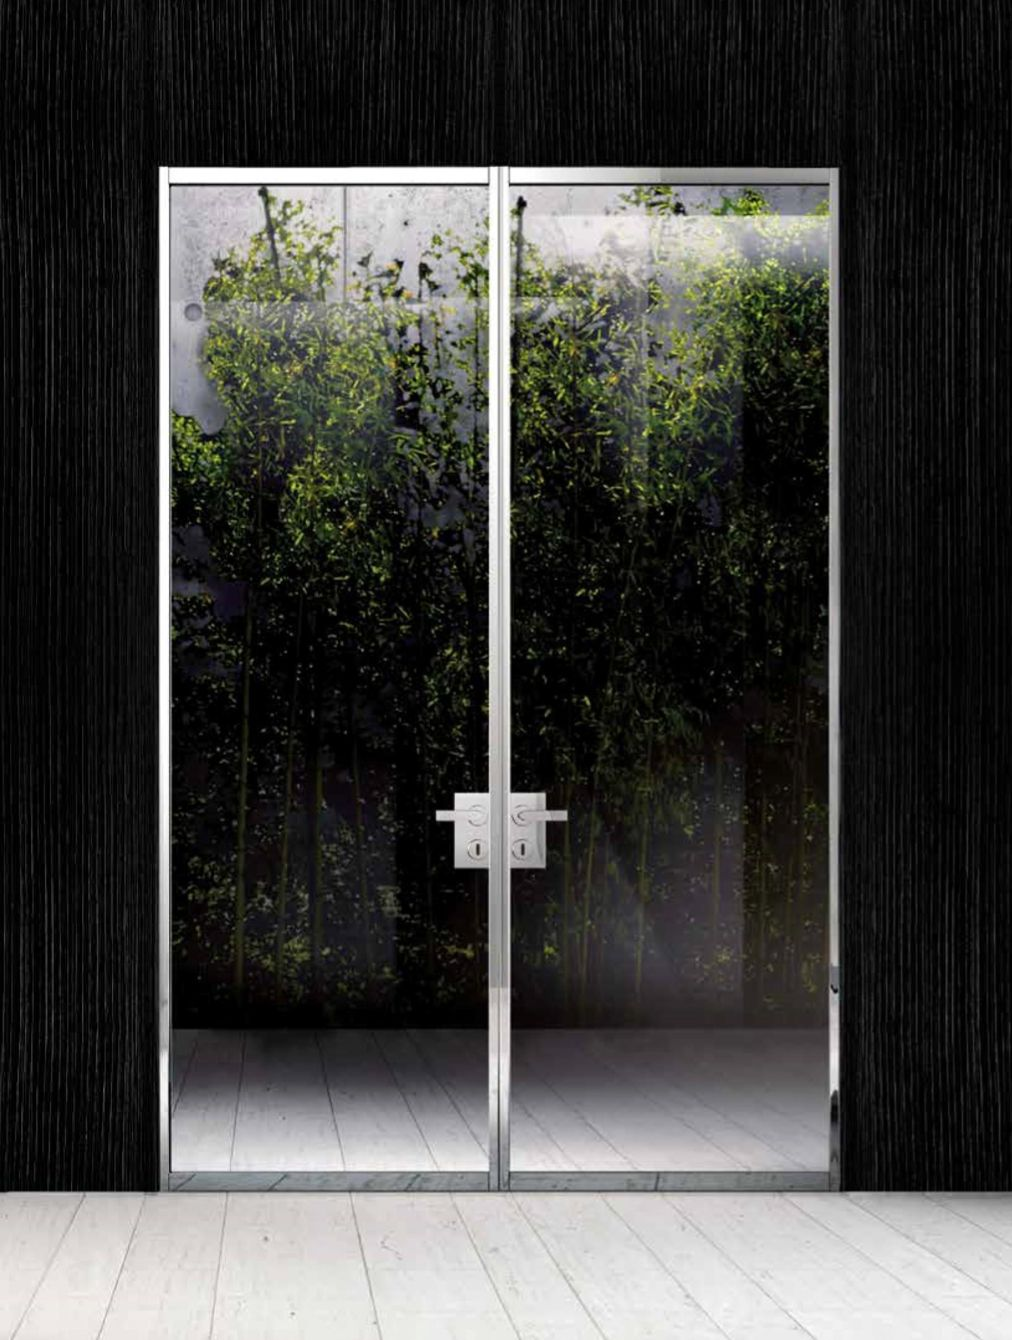 Double Swing Doors Polished Aluminum 6mm 1 4 Tempered Extra Clear Glass Glass Doors Interior Sliding Glass Door Glass Room Divider